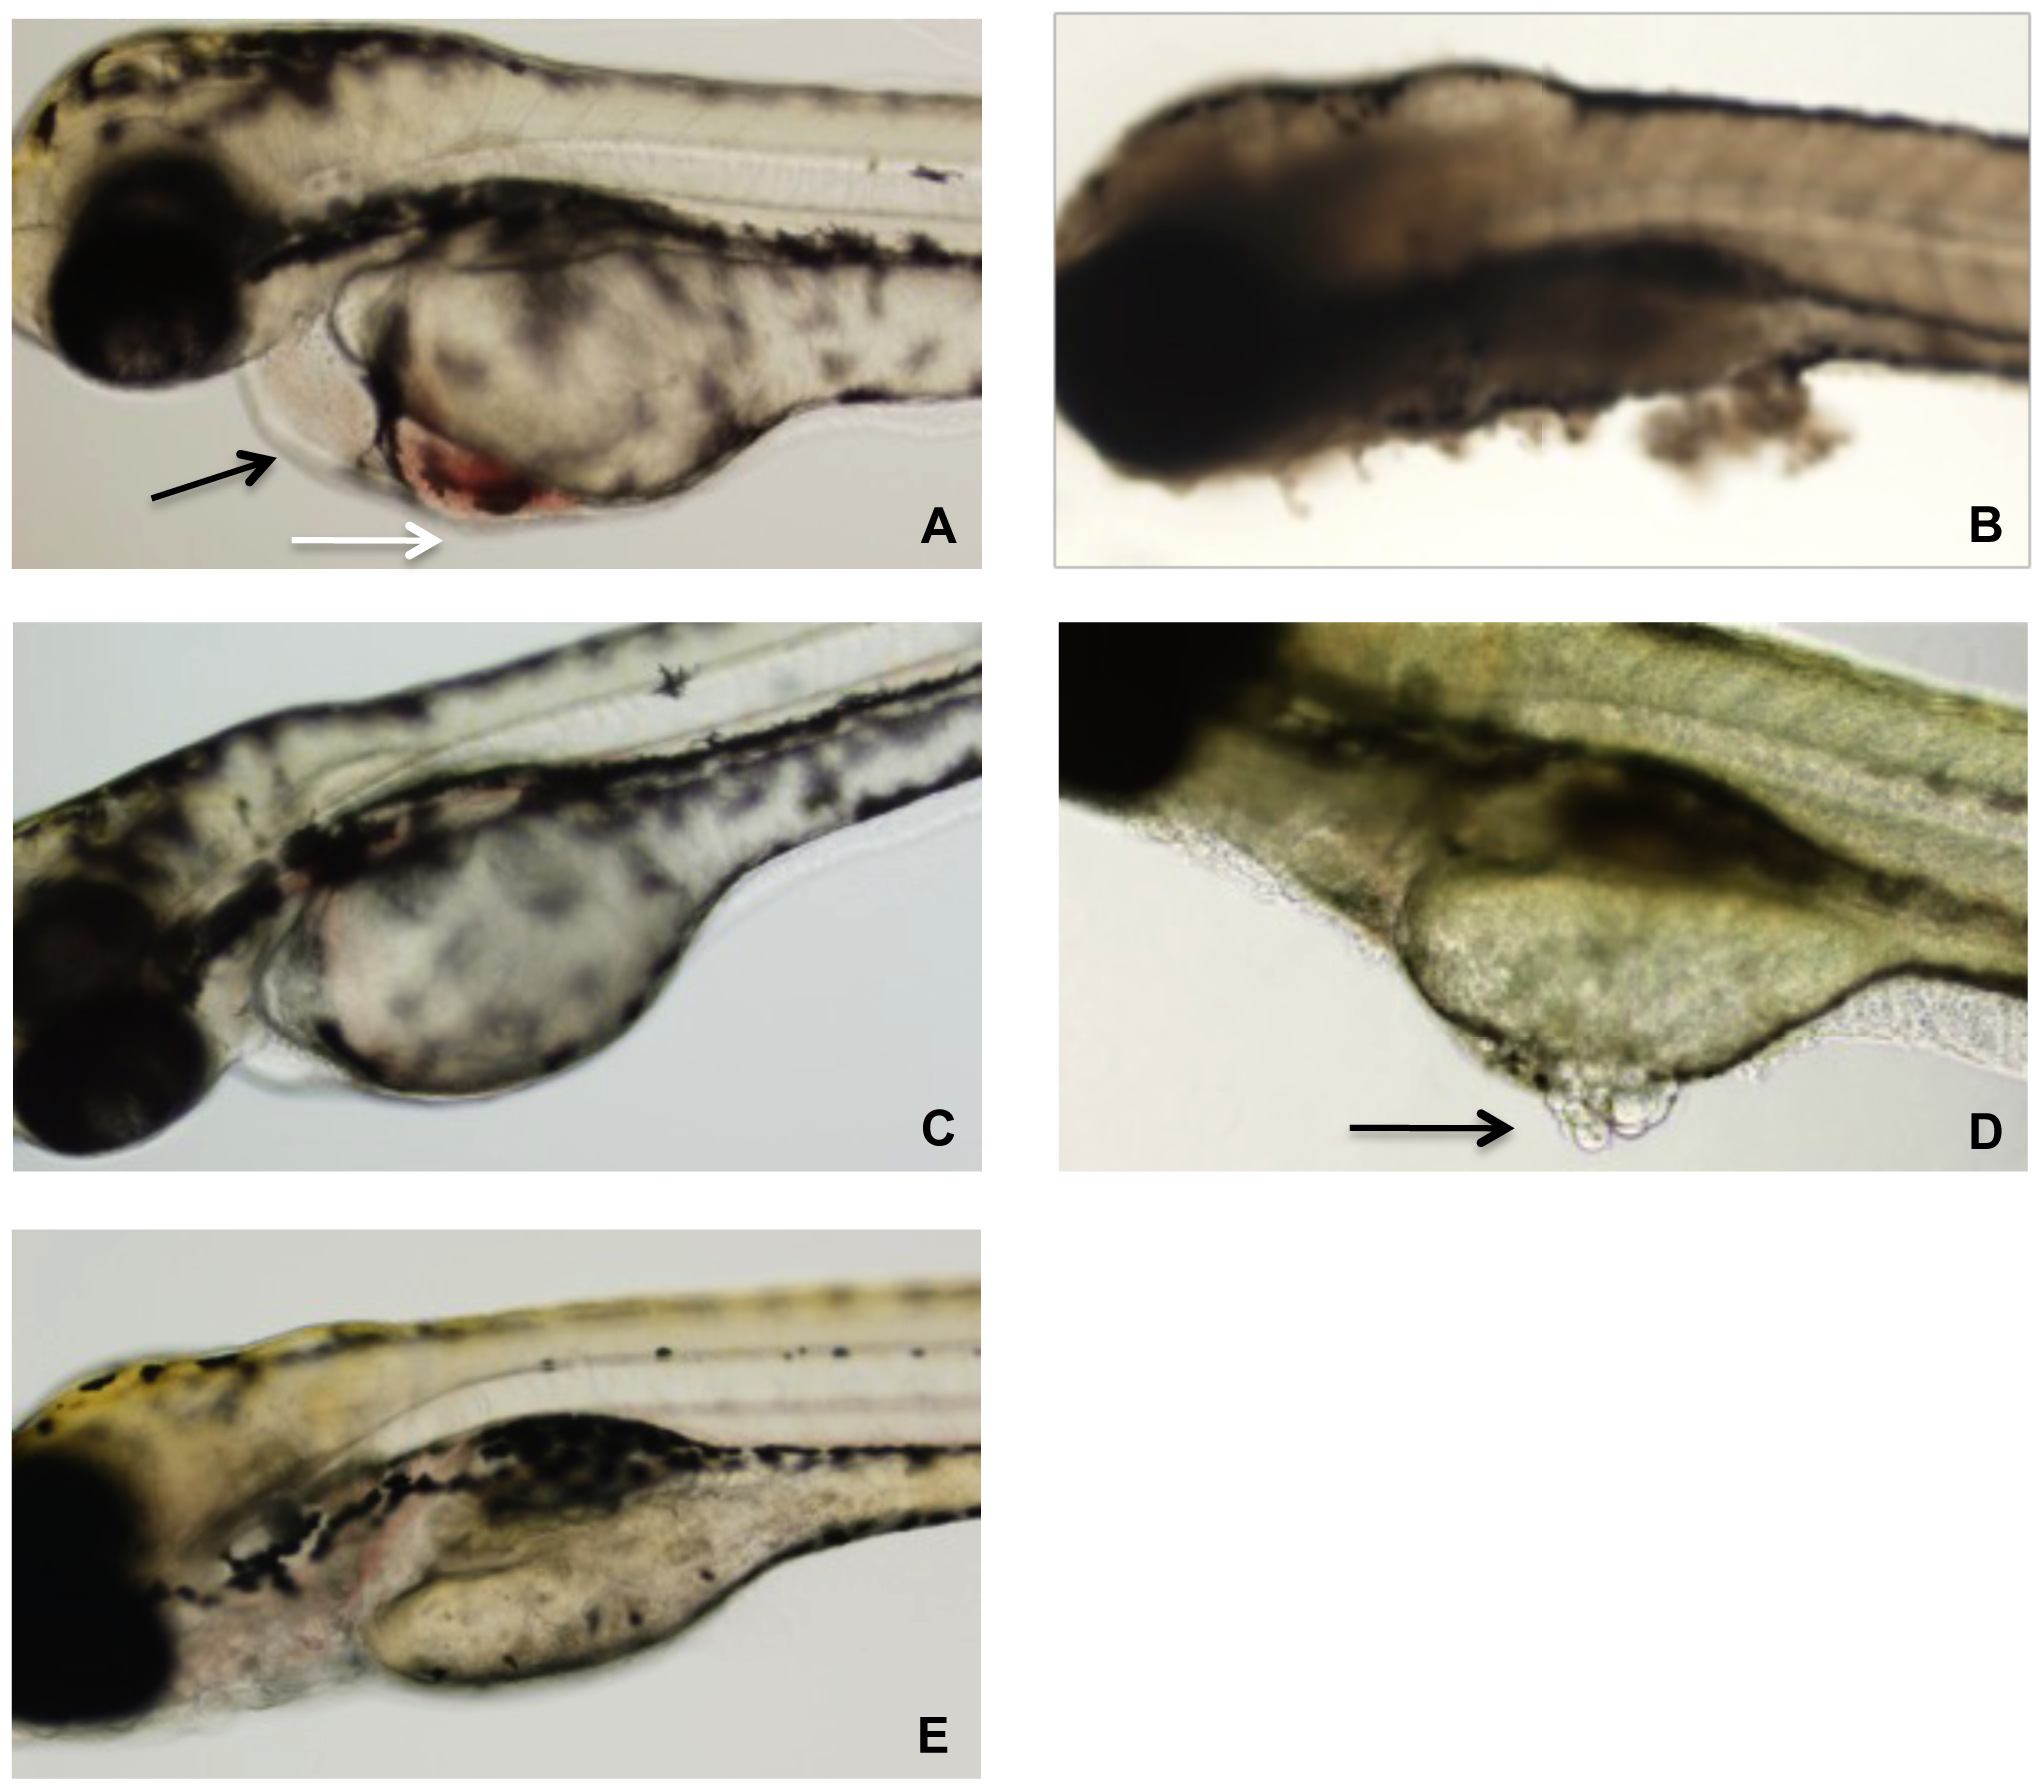 Representative photographs of zebrafish after 24 h exposure to TcdB.